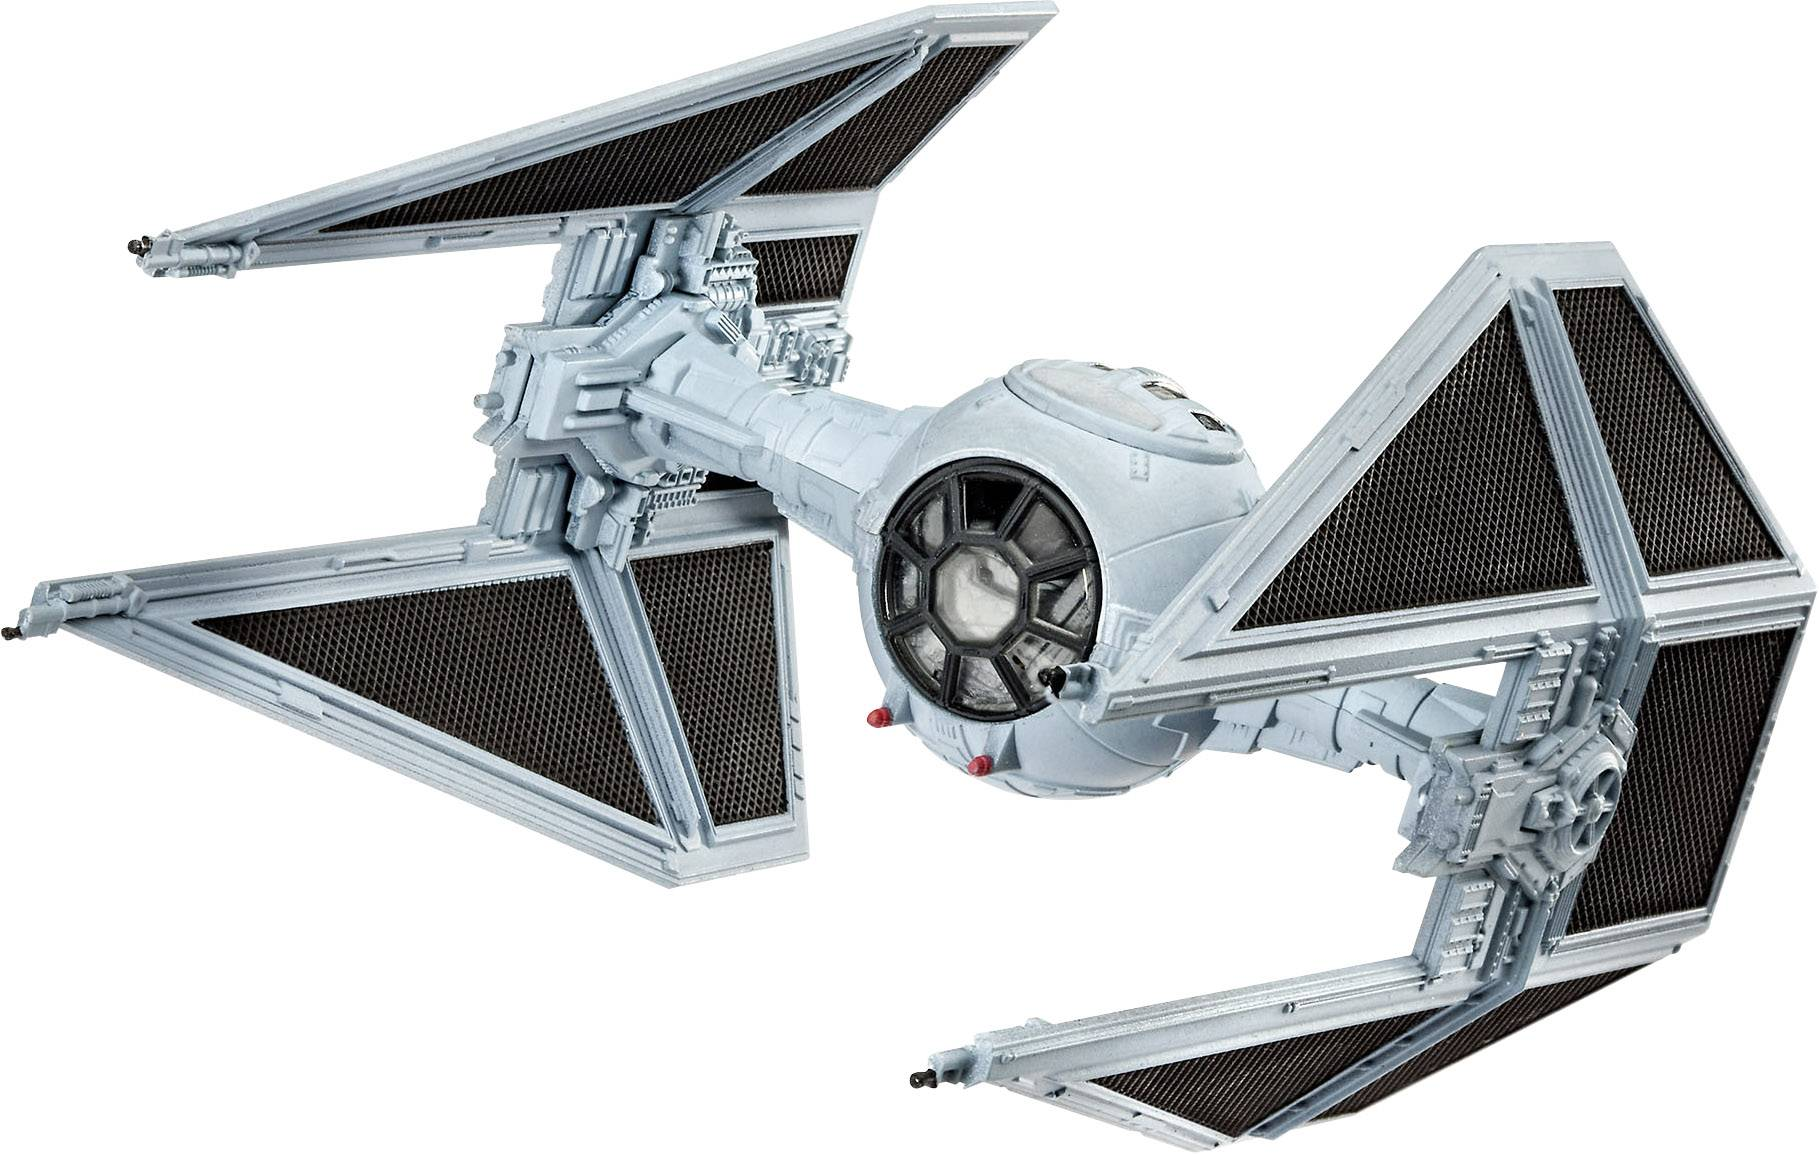 Sci-fi model, stavebnice Revell 03603 Star Wars Tie Interceptor